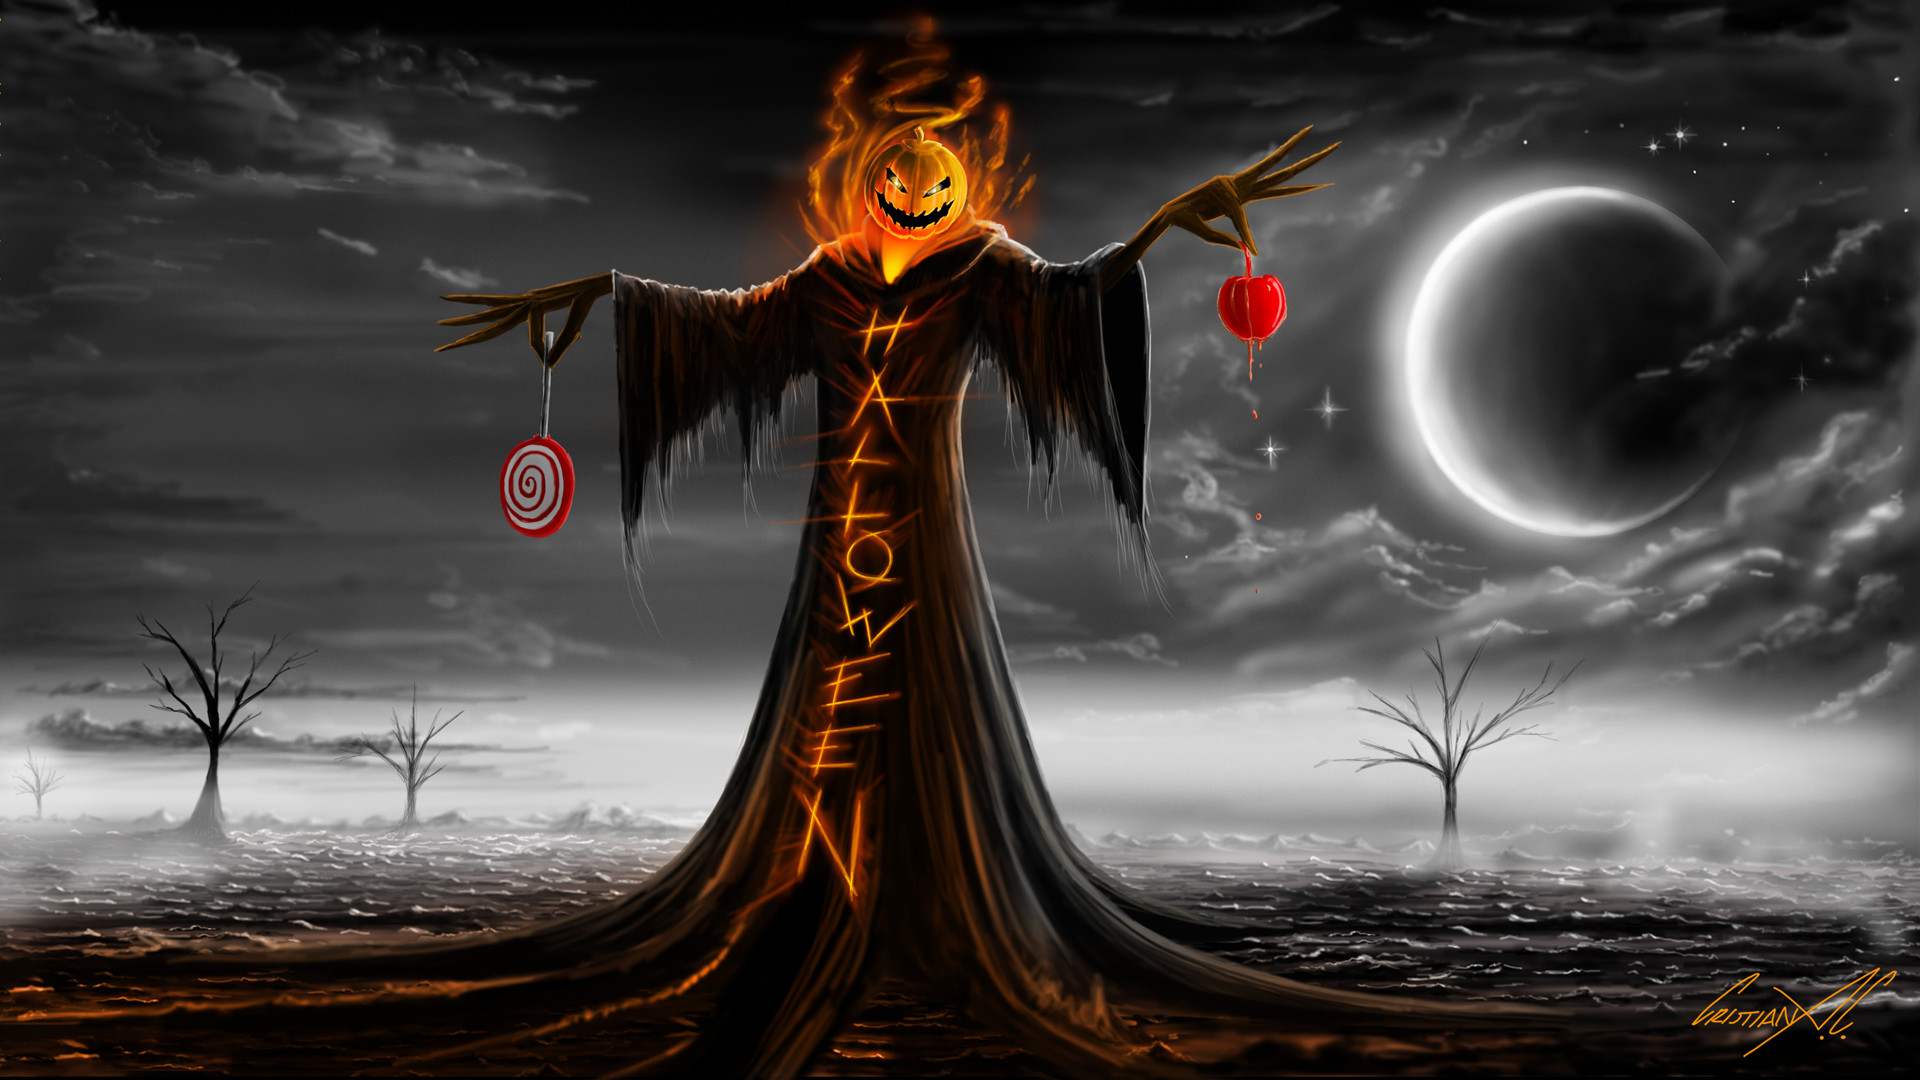 1920x1080 Halloween Wallpaper | Halloween wallpaper 2012, full hd 1080p